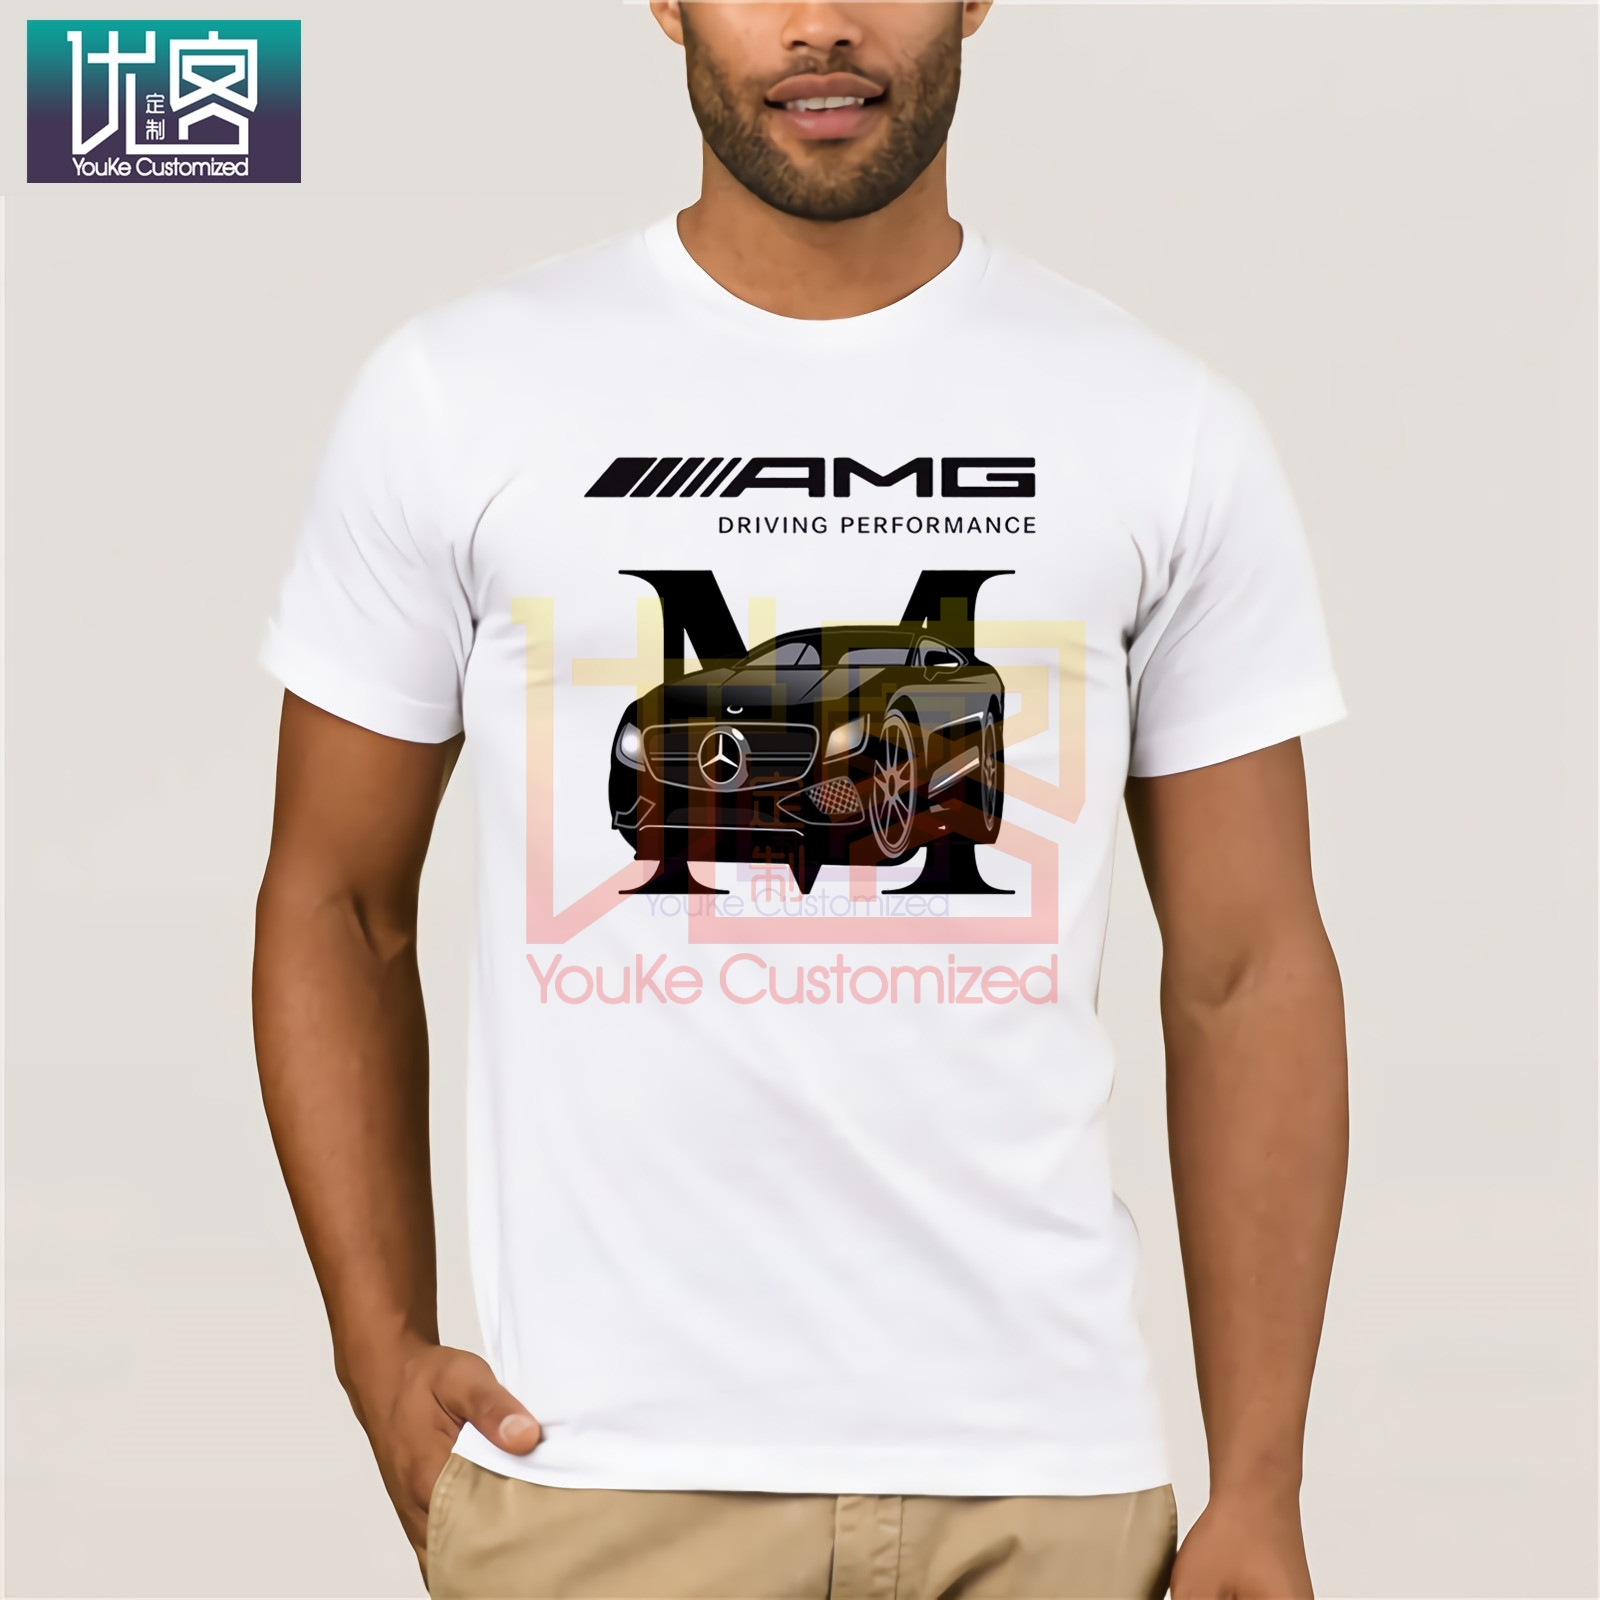 New Summer <font><b>F1</b></font> Car Styling Mercedes AMG <font><b>T</b></font> <font><b>Shirt</b></font> Men Plus Size Clothing image